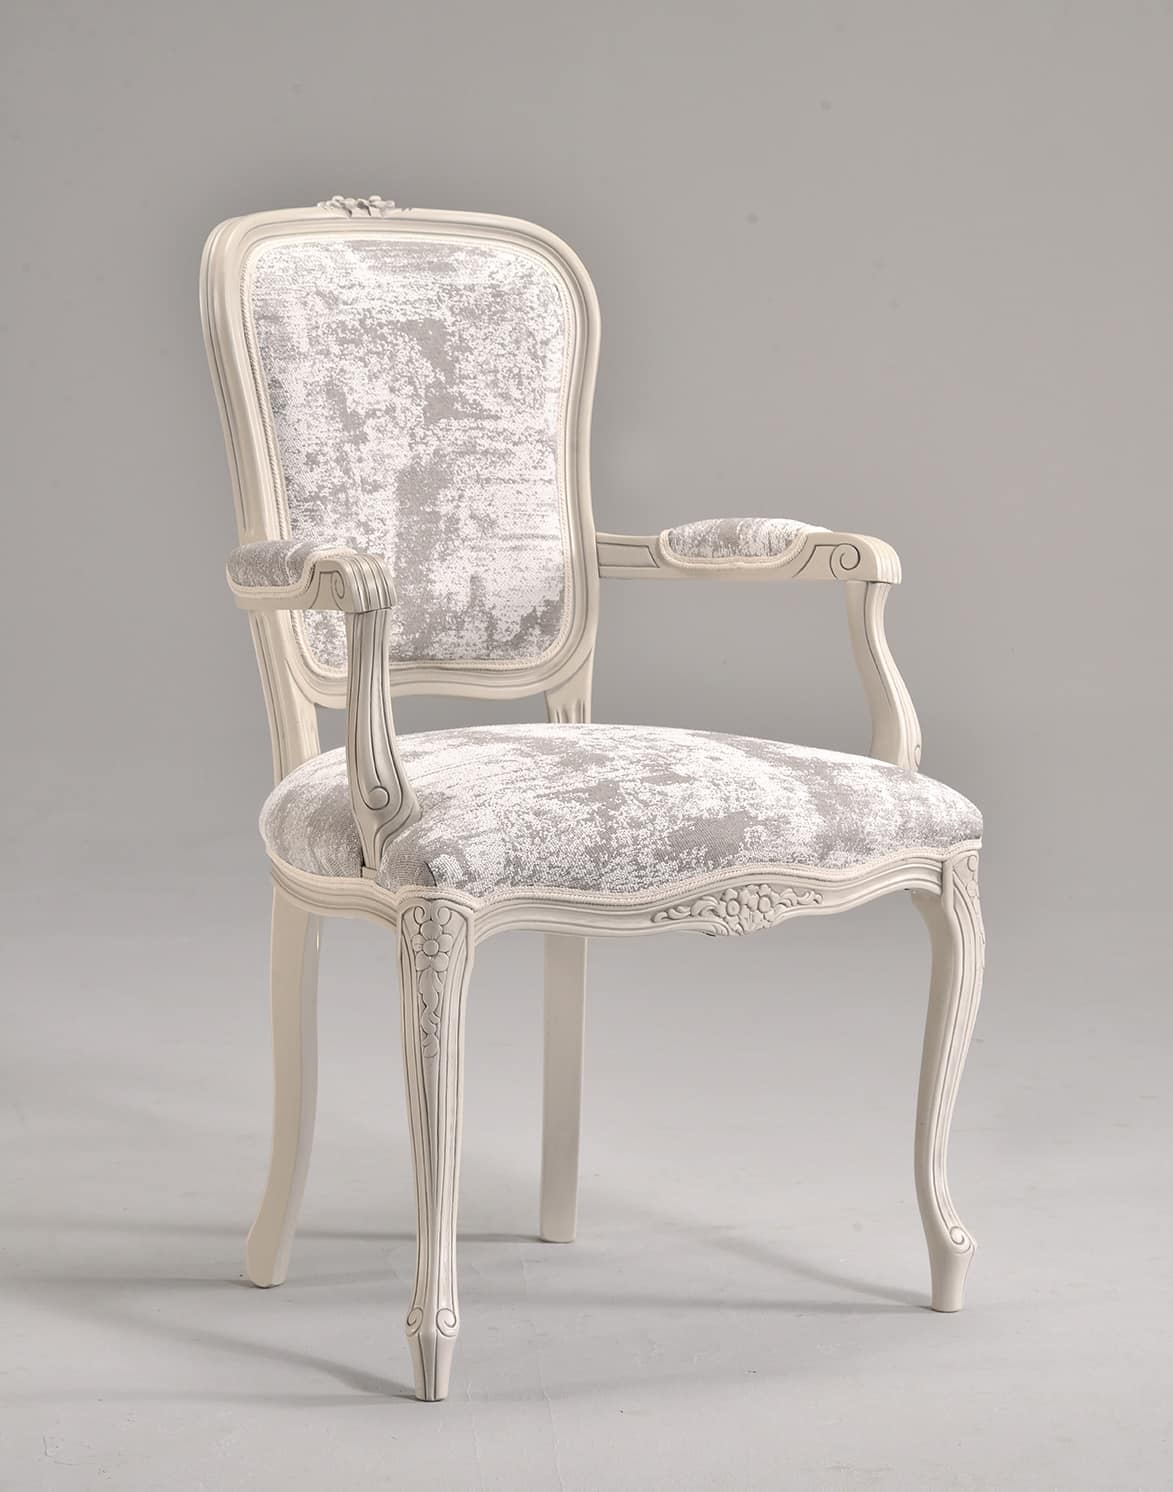 BRIANZOLA chair with armrests 8017A, Head of the table chair, upholstered, in beech, for reception